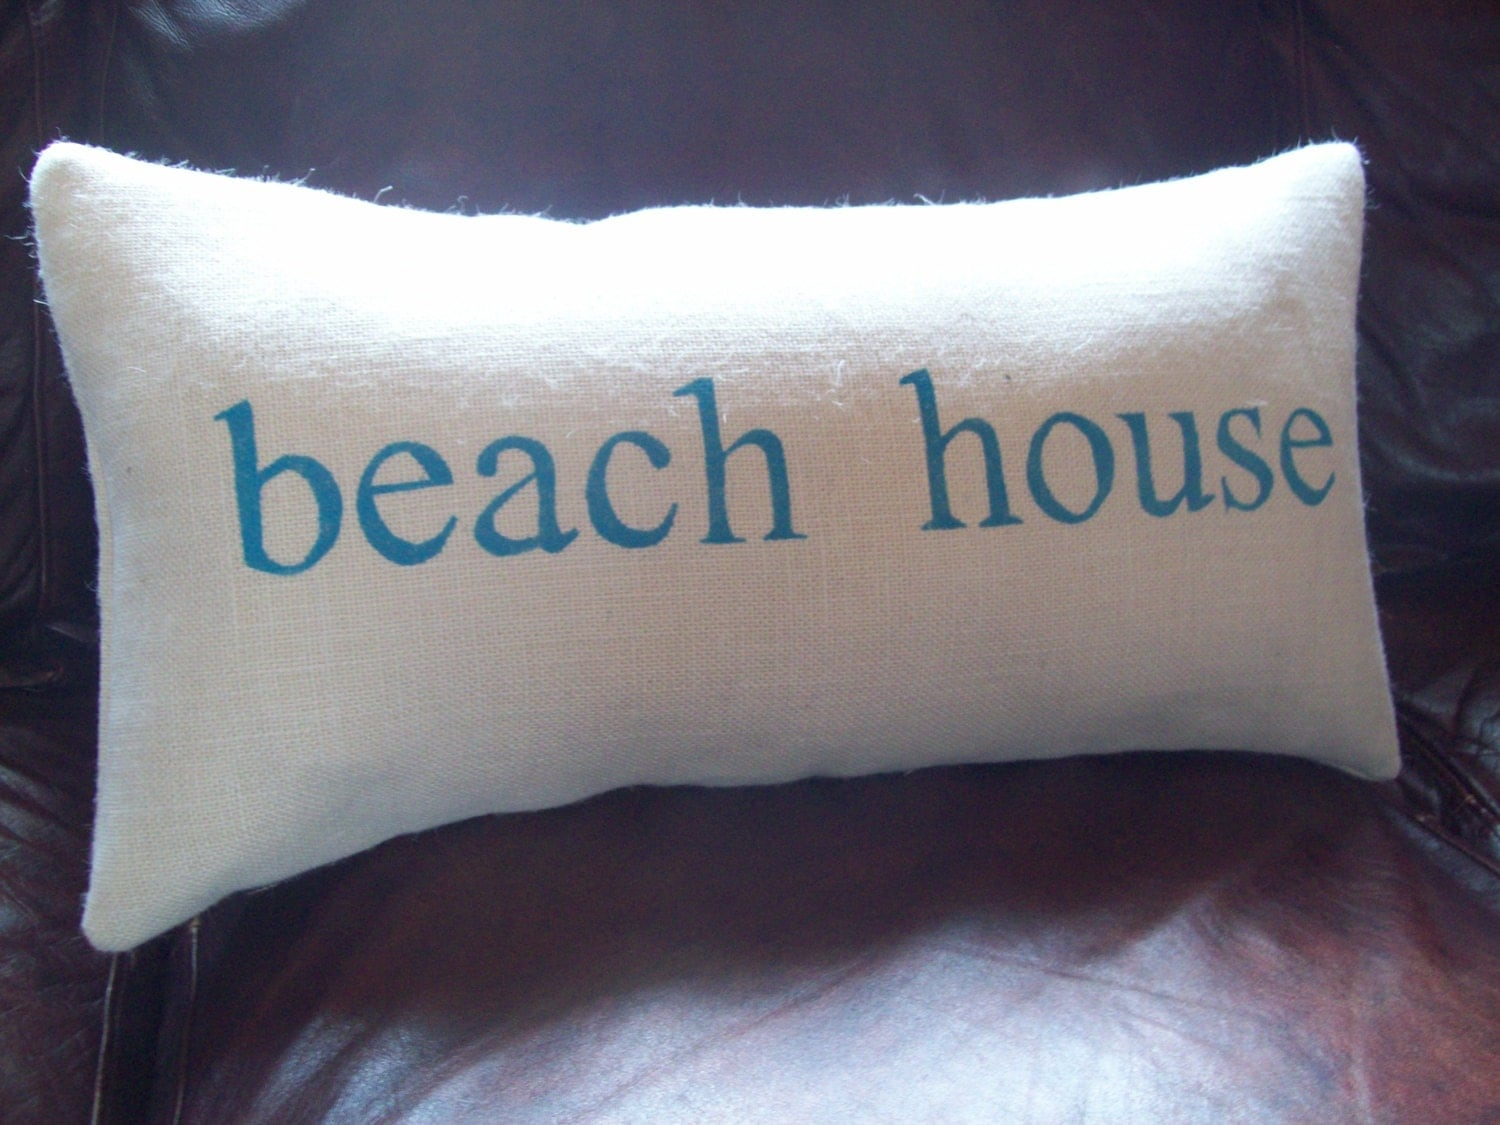 beach house Burlap Decorative Pillow Cover 12 x 24 or 16 x 24